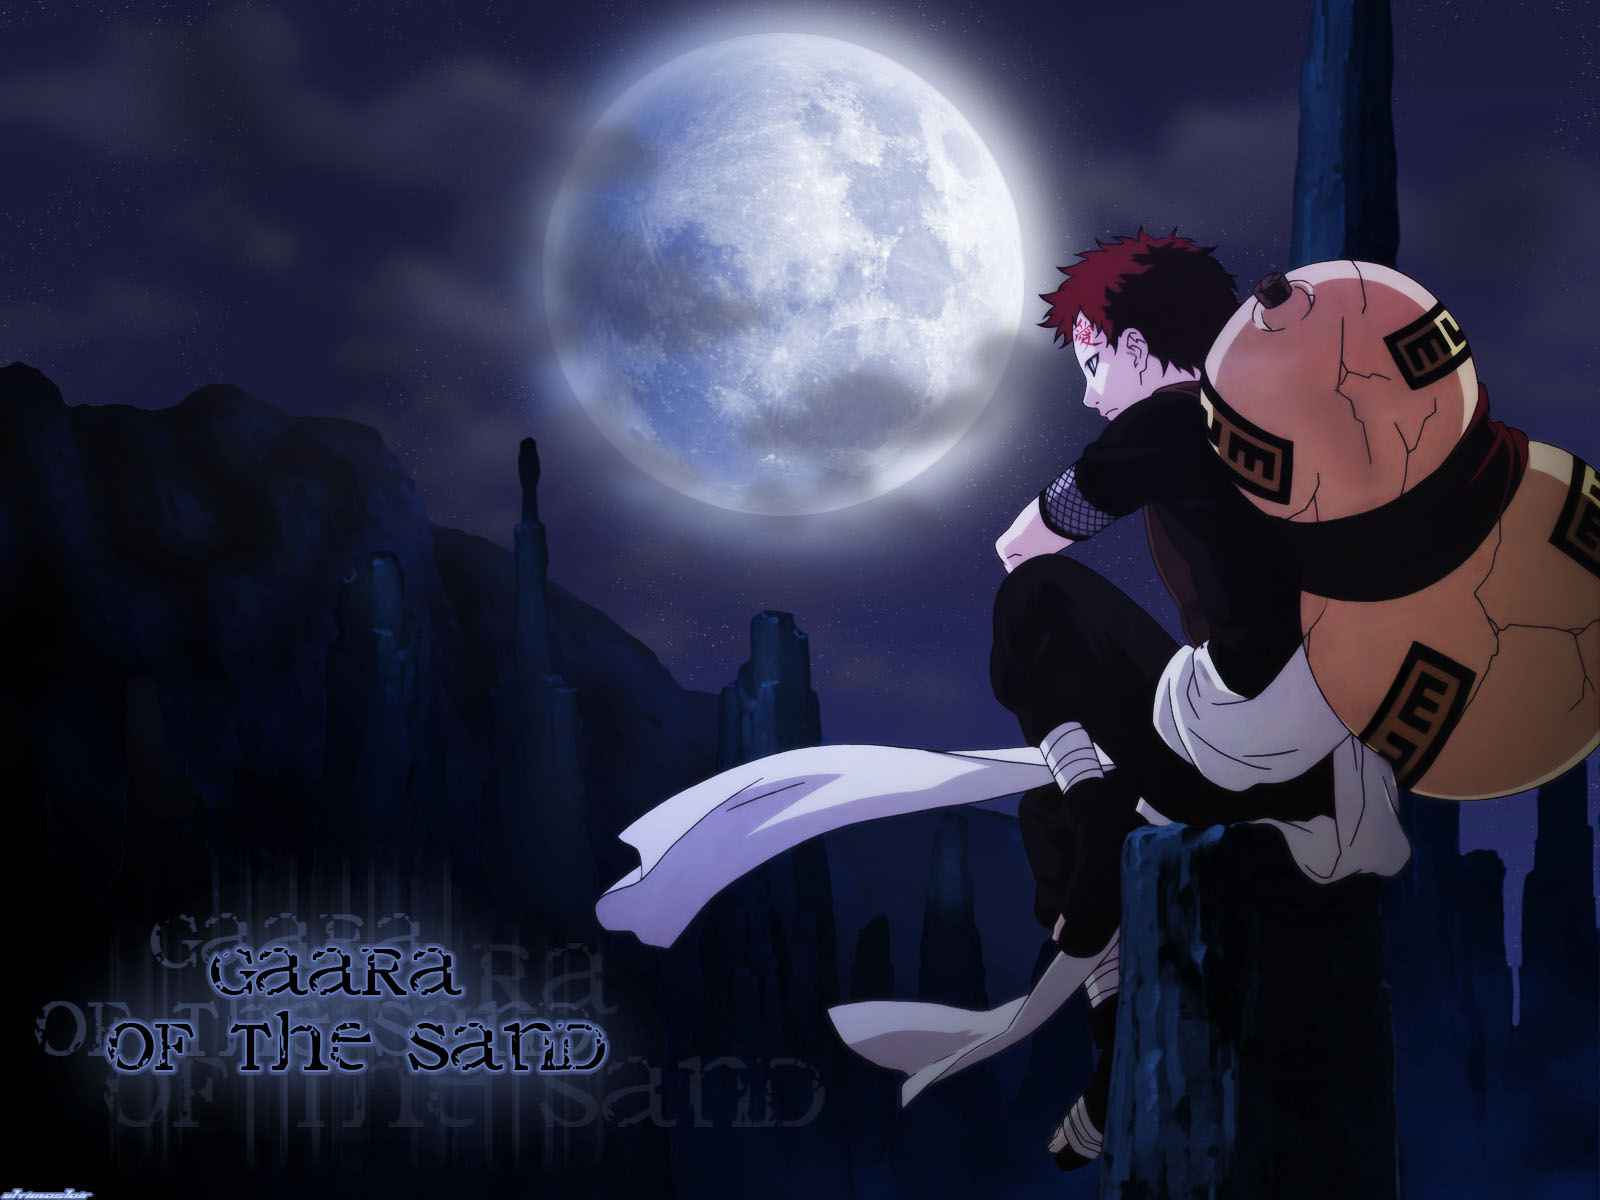 gaara naruto - photo #44